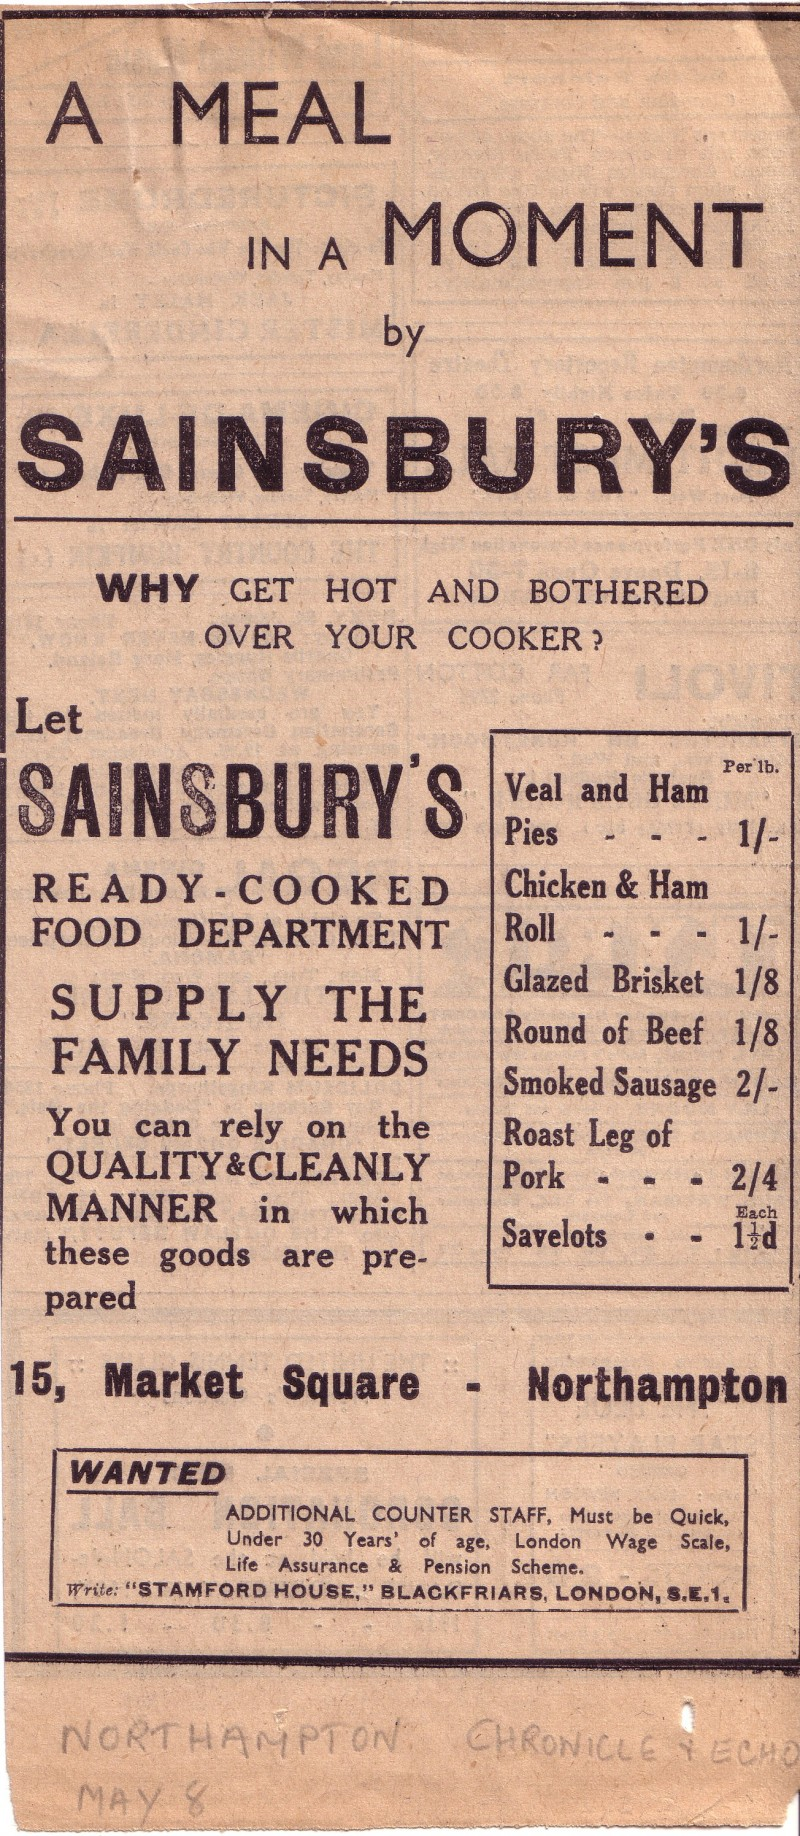 "SA/MARK/ADV/1/1/1/1/1/16 - ""A meal in a moment by Sainsbury's..."" newspaper advertisements, [c.1930s]"